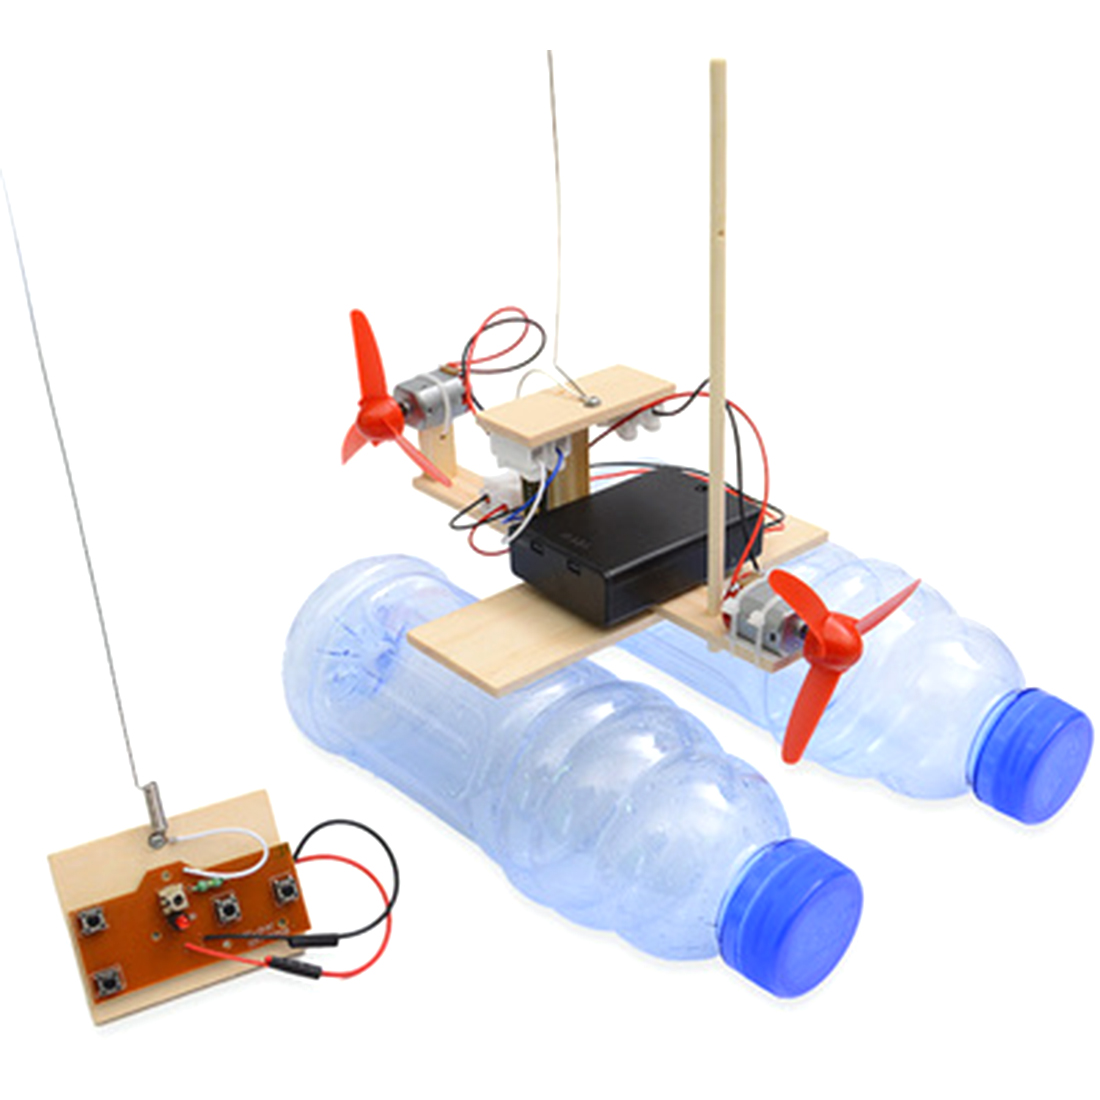 Surwish DIY RC Airboat Model Science Experiment Puzzle Assembly Toy For Students Boys Kids Diy Educational Science Kits